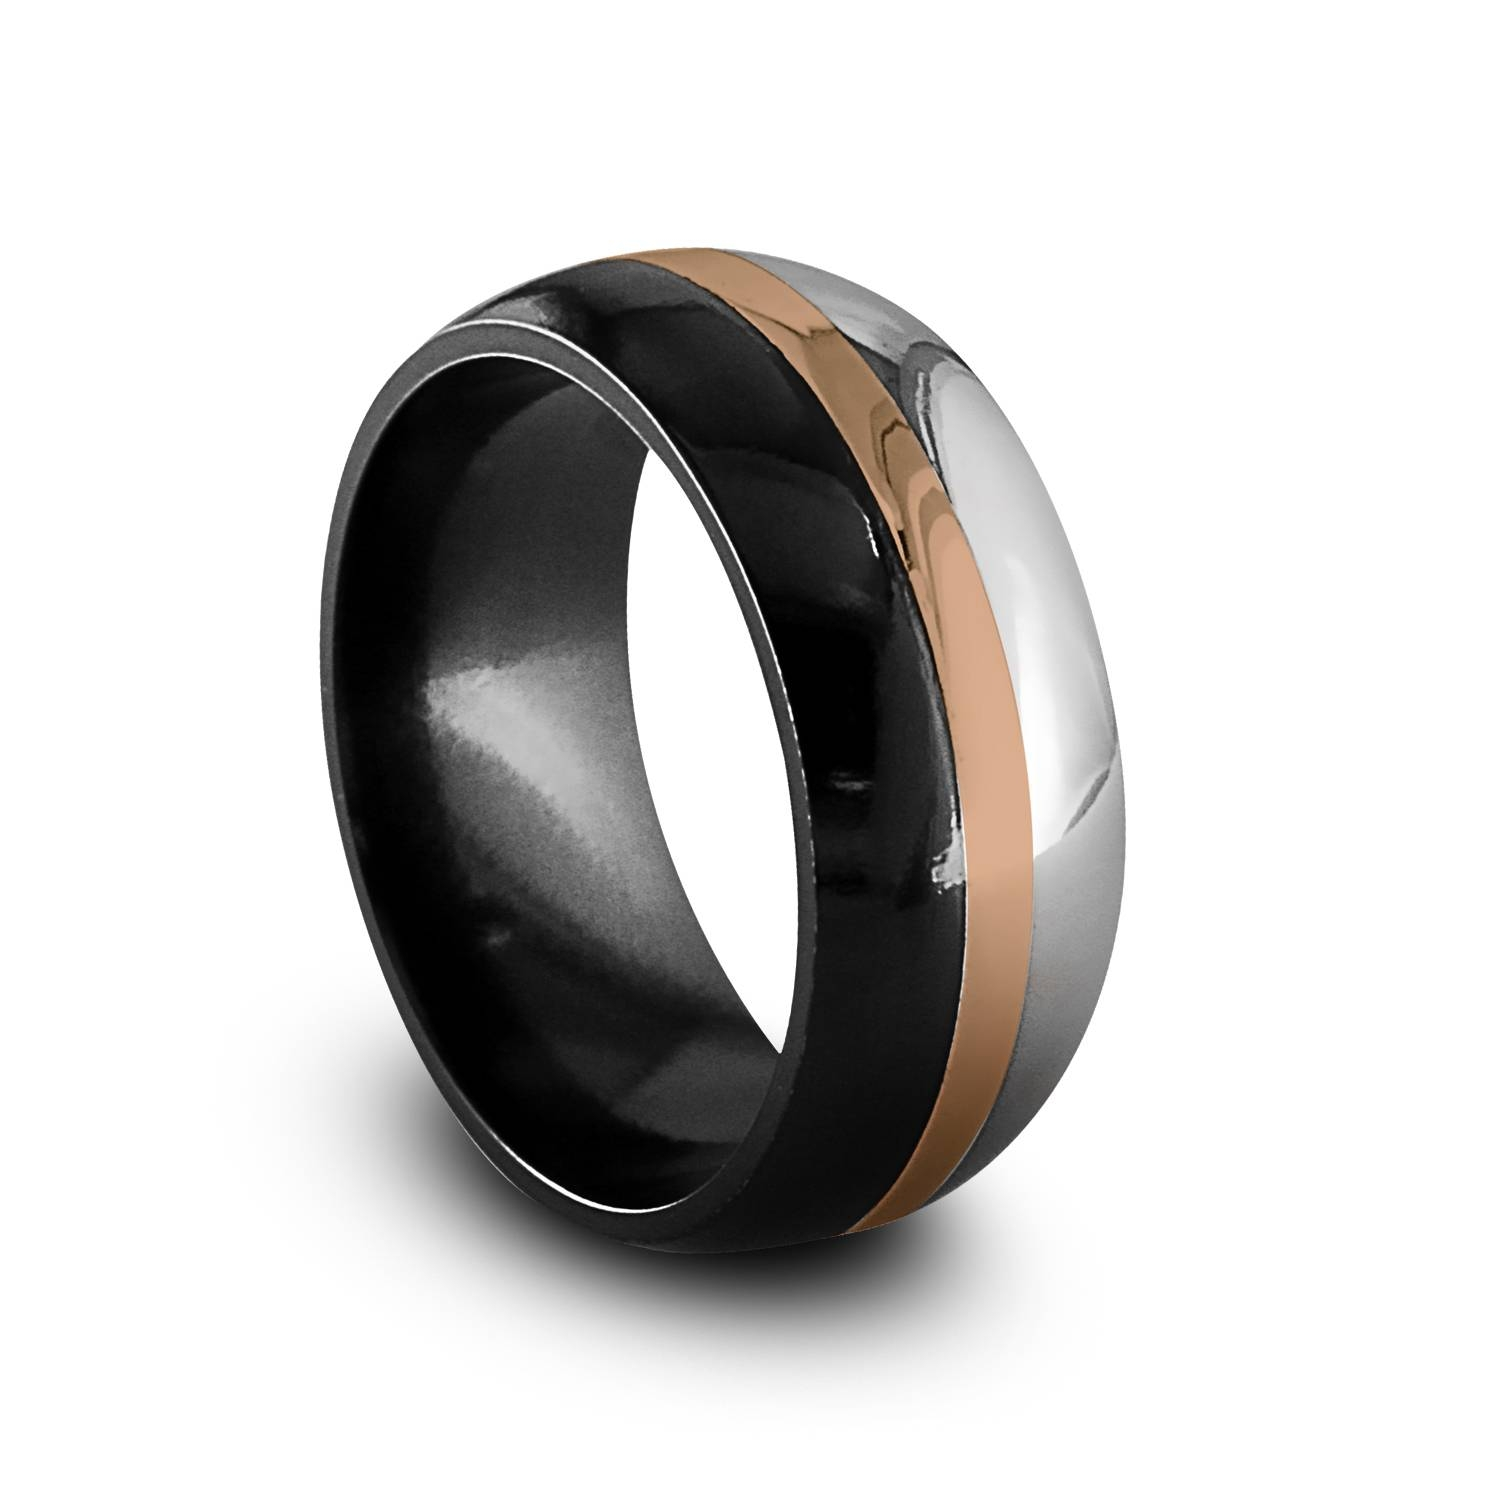 Black Titanium & Rose Gold Men's Ring | Alpha Rings Regarding Black And Rose Gold Men's Wedding Bands (View 2 of 15)